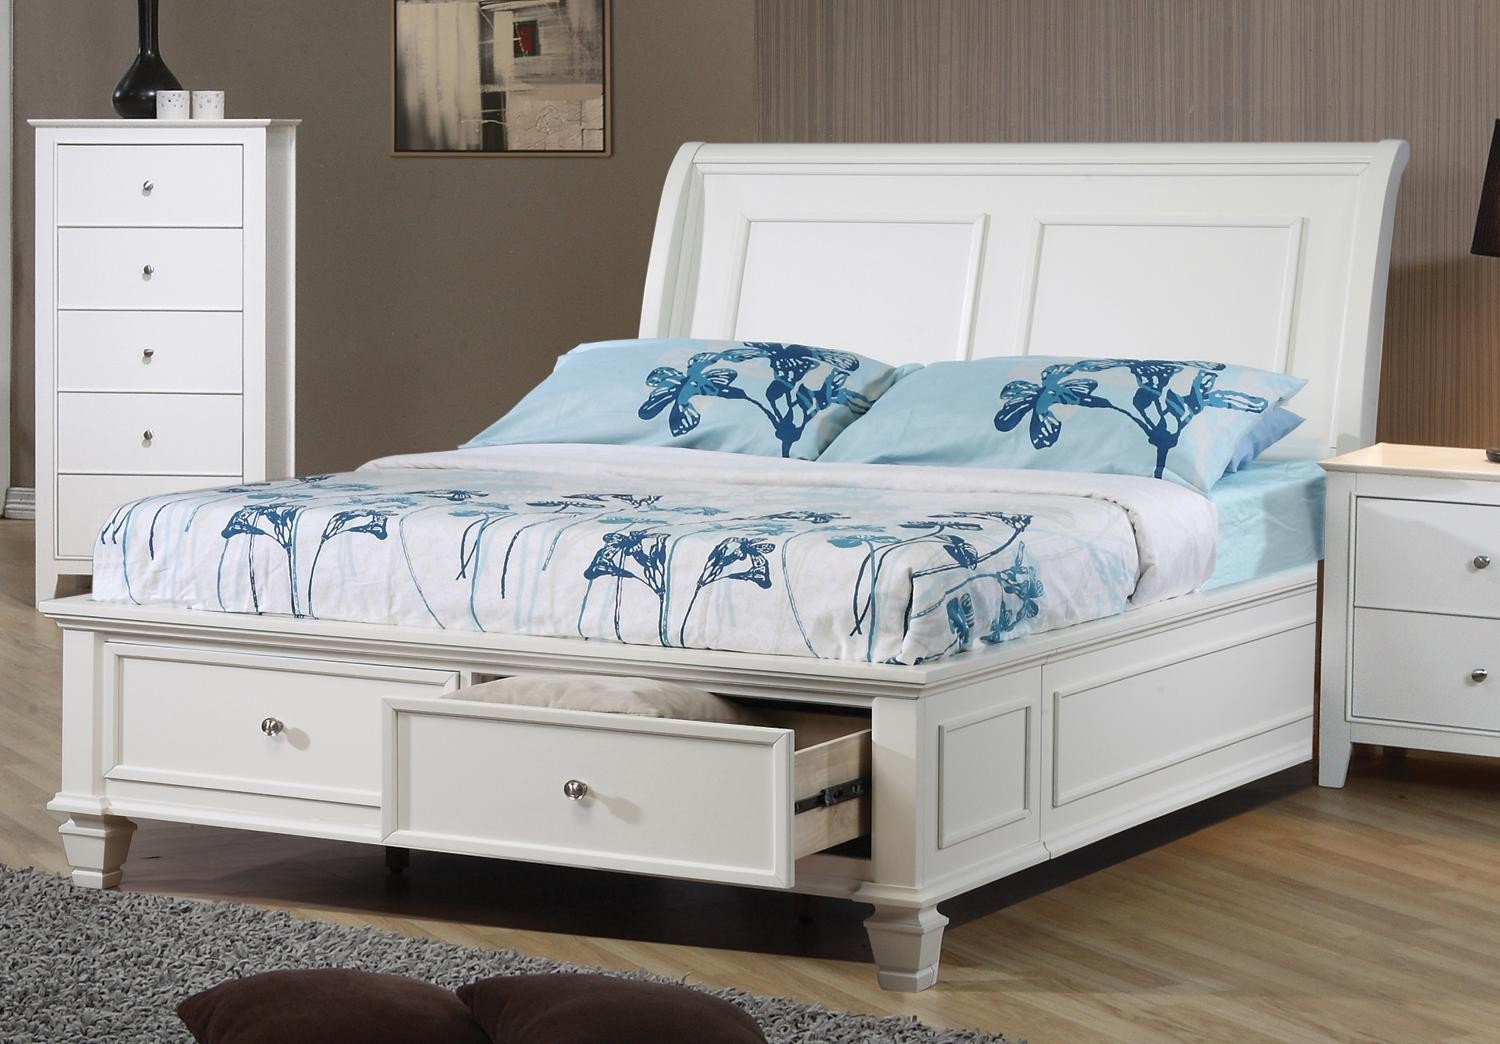 Selena youth sleigh storage bedroom set from coaster for Youth bedroom furniture sets